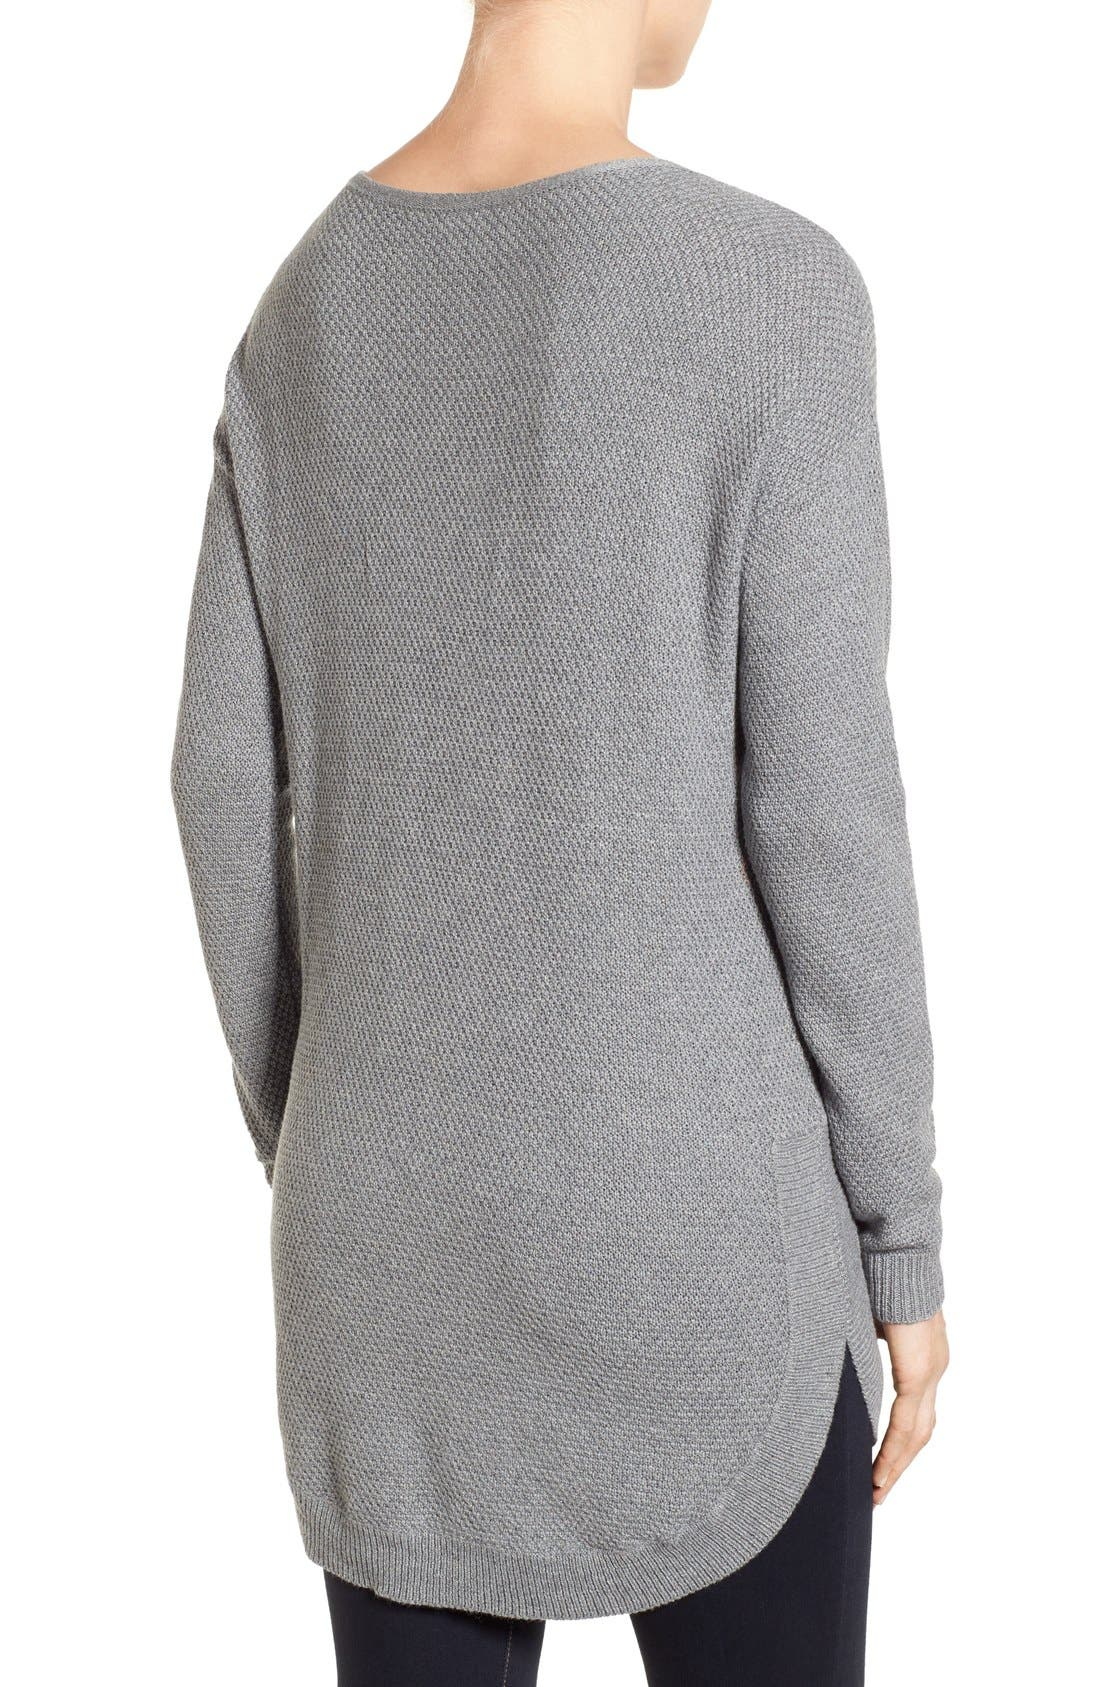 Texture Knit Tunic,                             Alternate thumbnail 2, color,                             Grey Texture Pattern